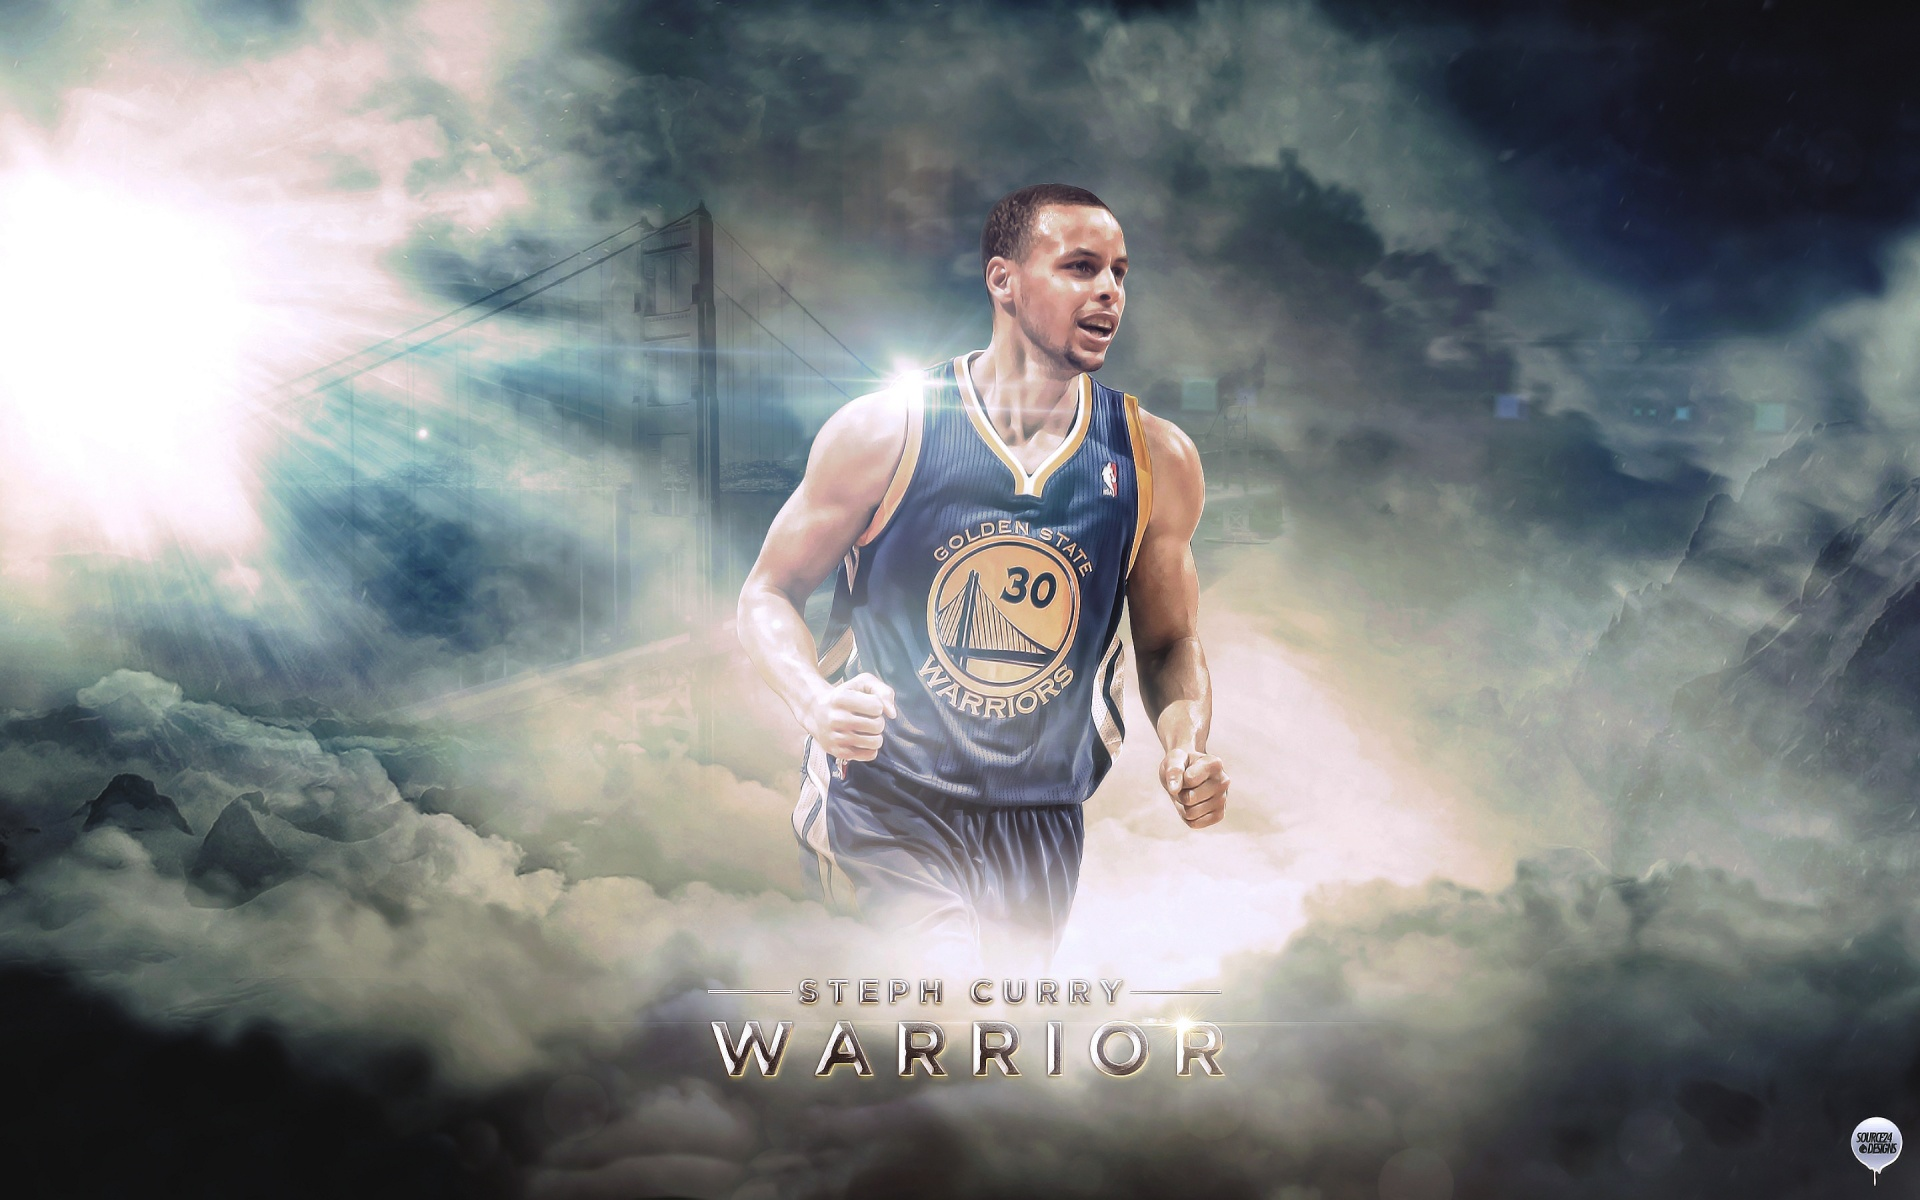 Stephen Curry Basketball Player Wallpapers HD Wallpapers 1920x1200